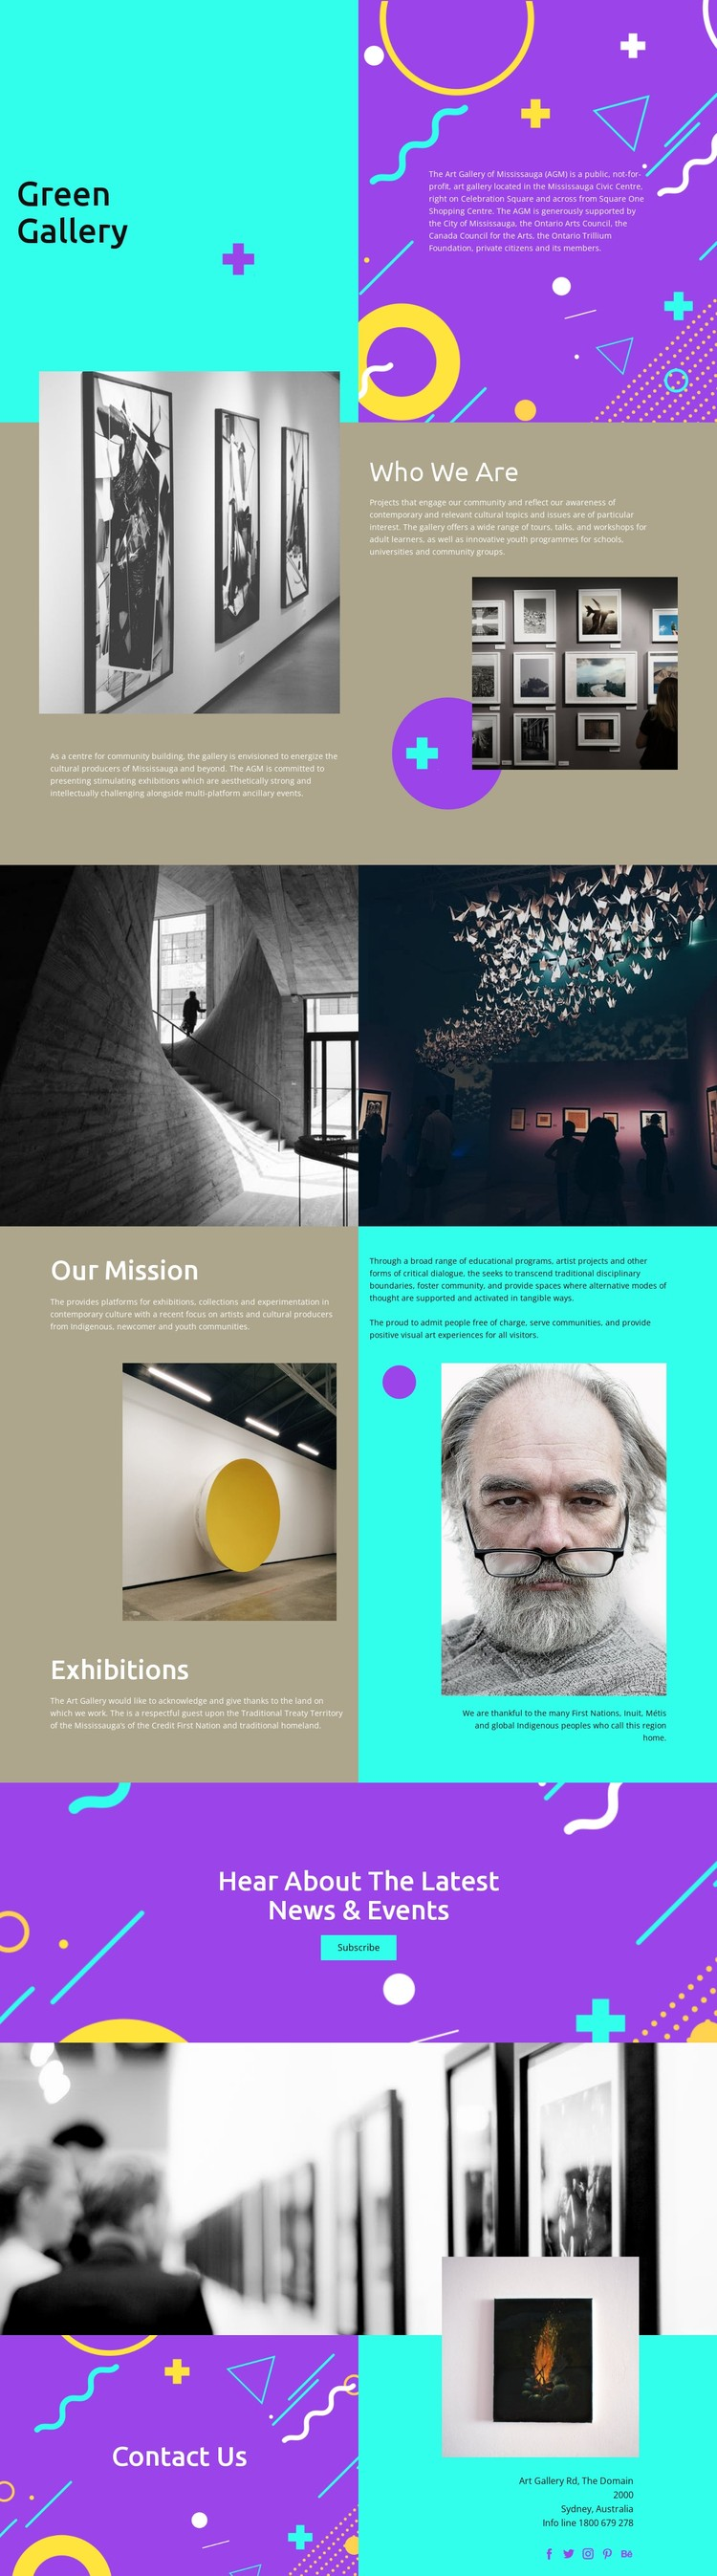 Gallery of fashion photographers Static Site Generator